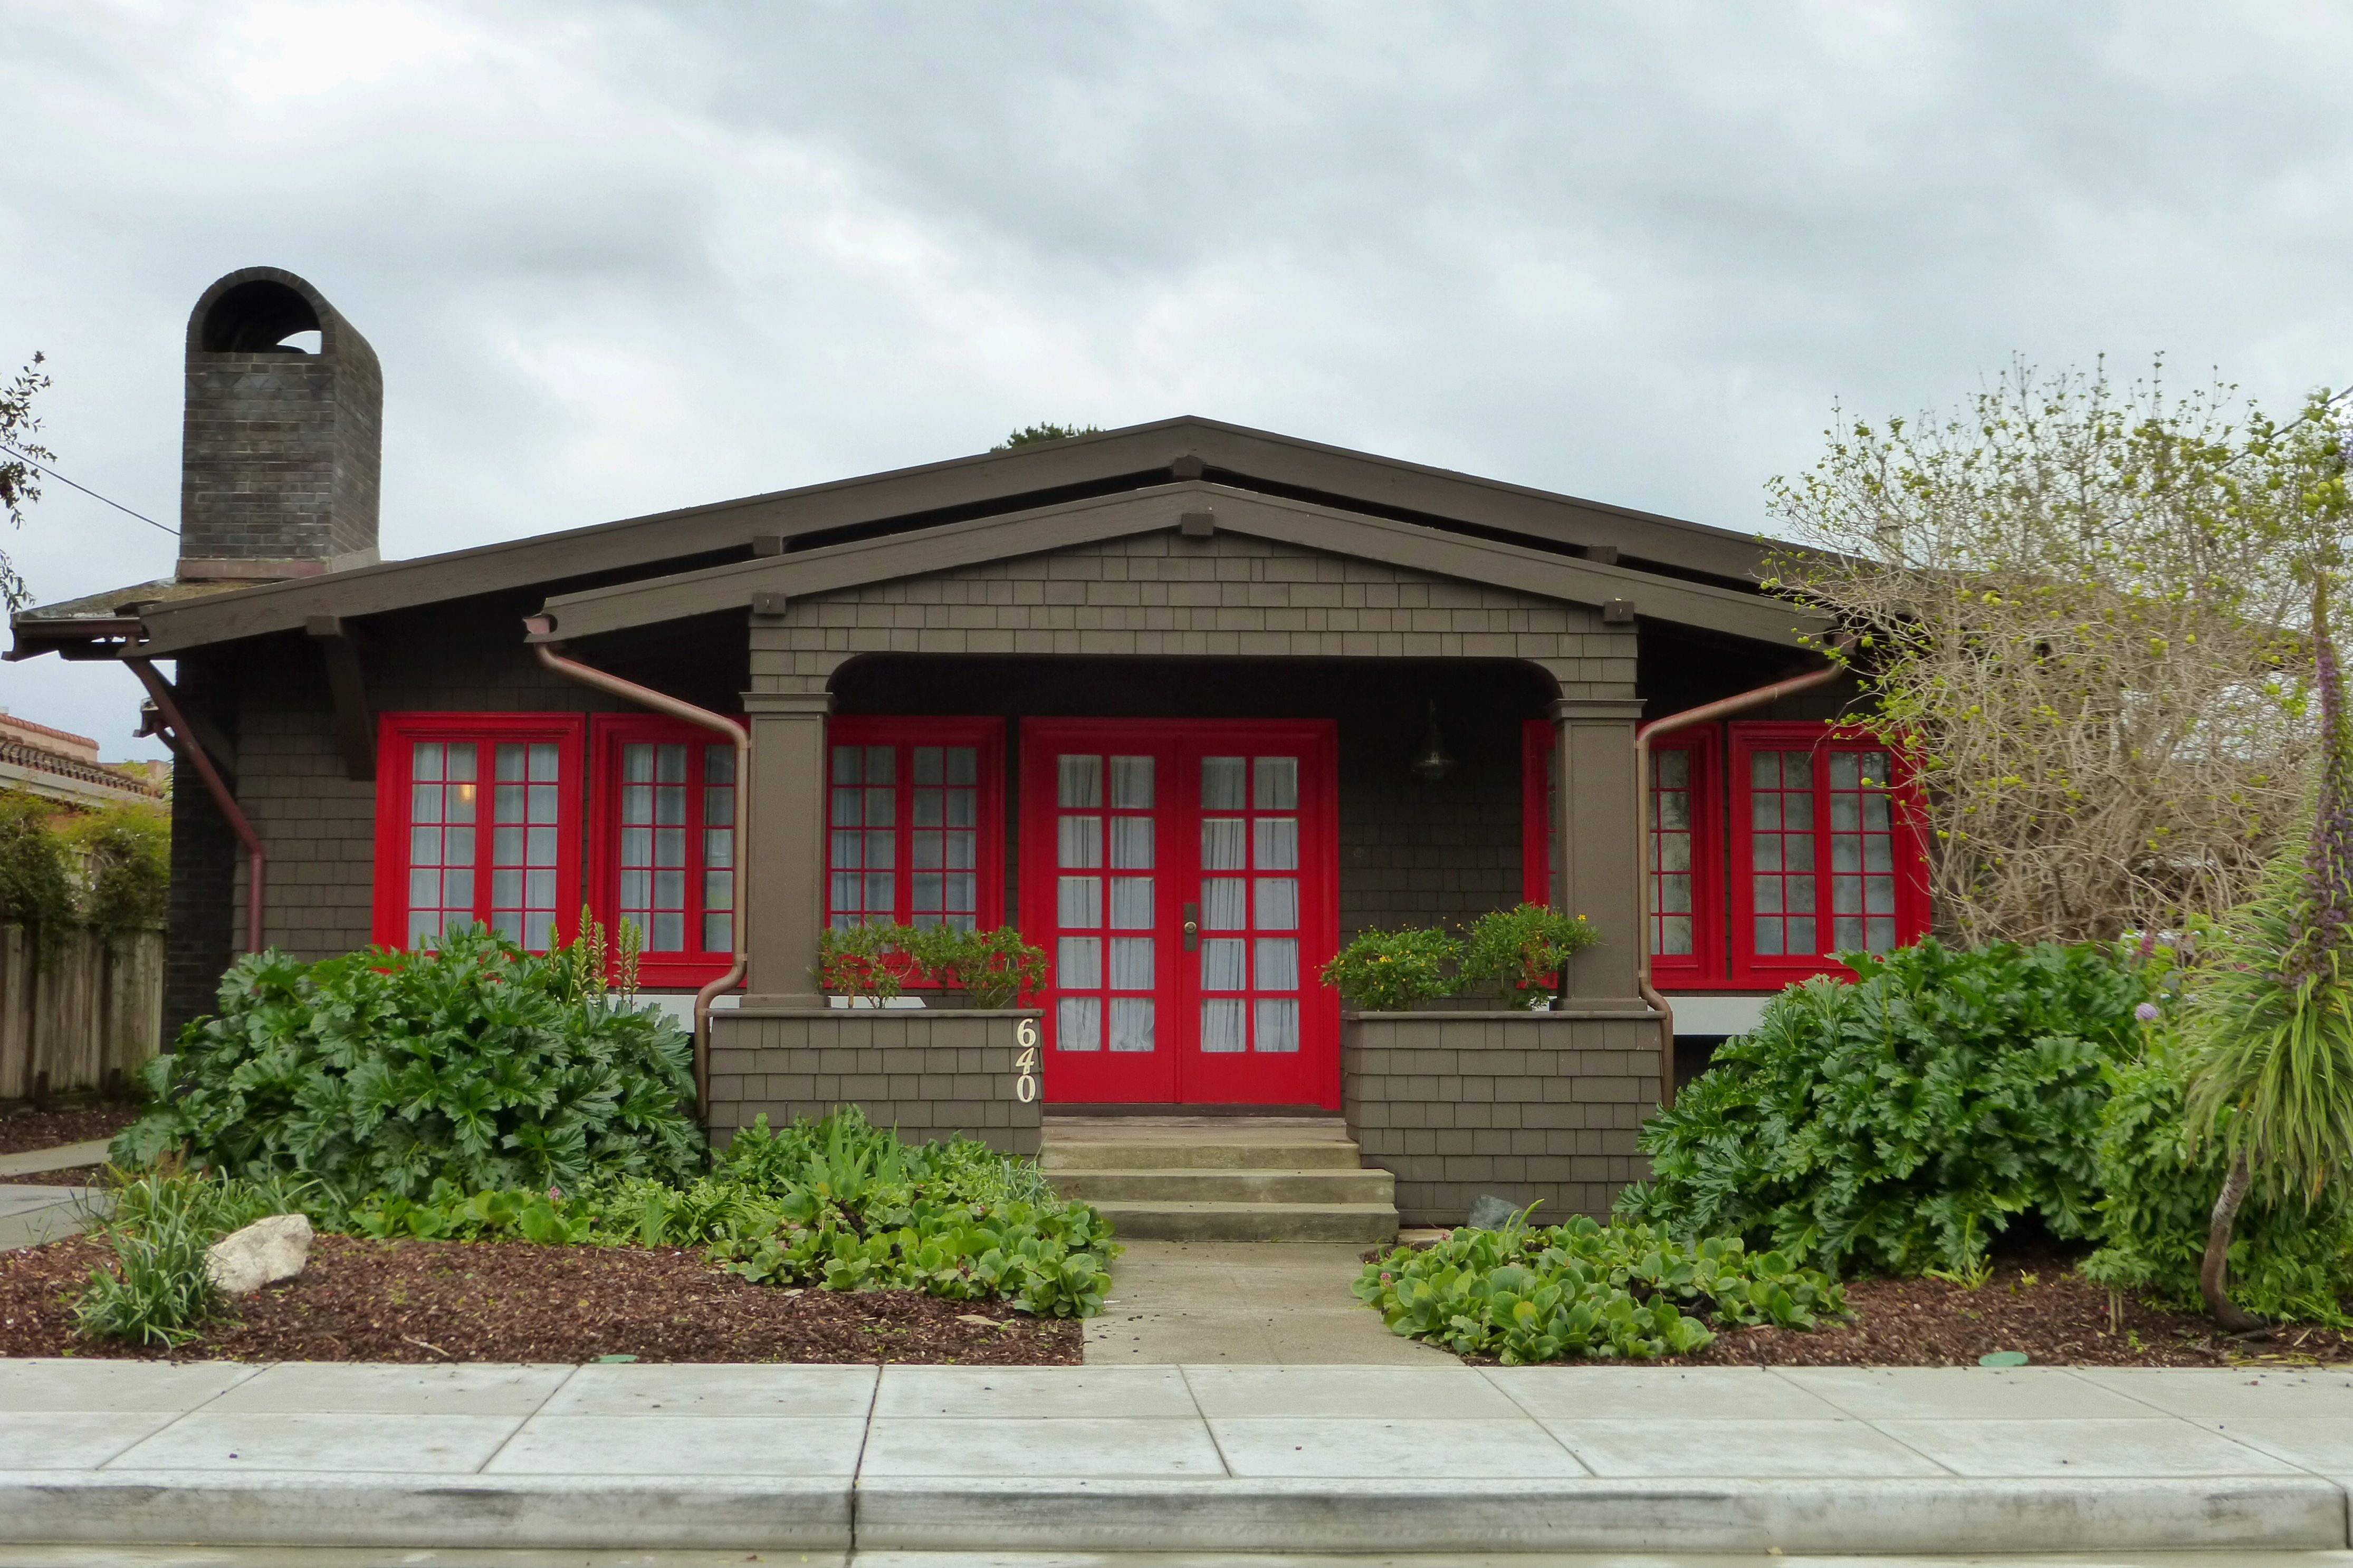 Front view of brown-shingled bungalow with red doors and windows